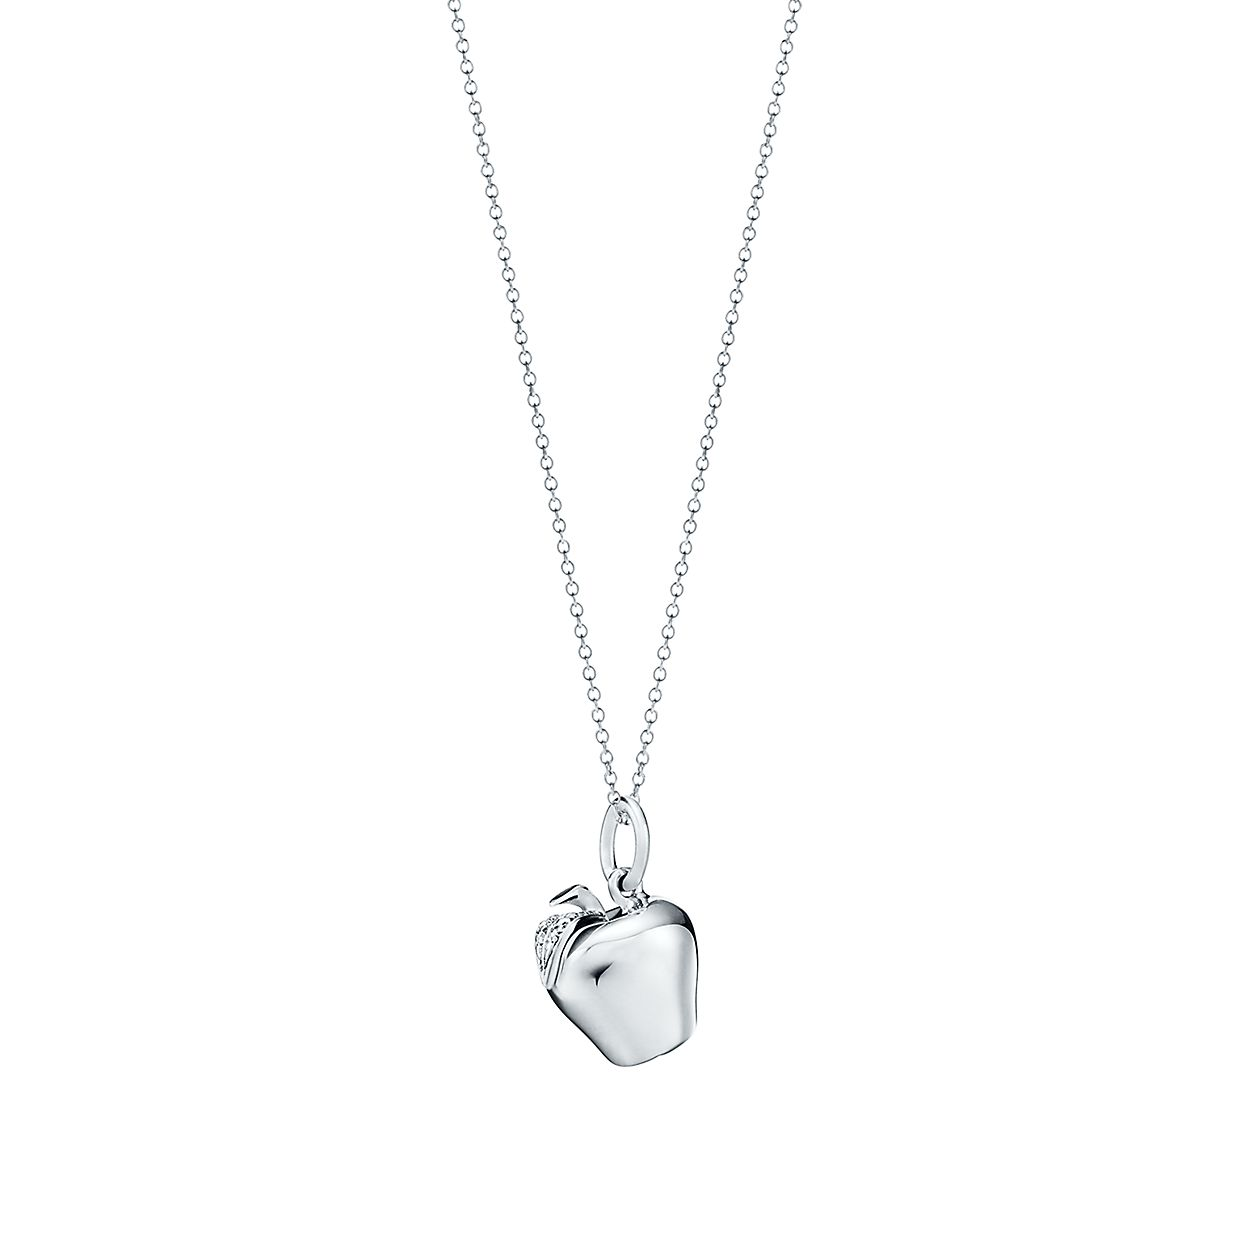 Apple charm in sterling silver on a chain tiffany co apple charm and chain apple charm and chain aloadofball Choice Image